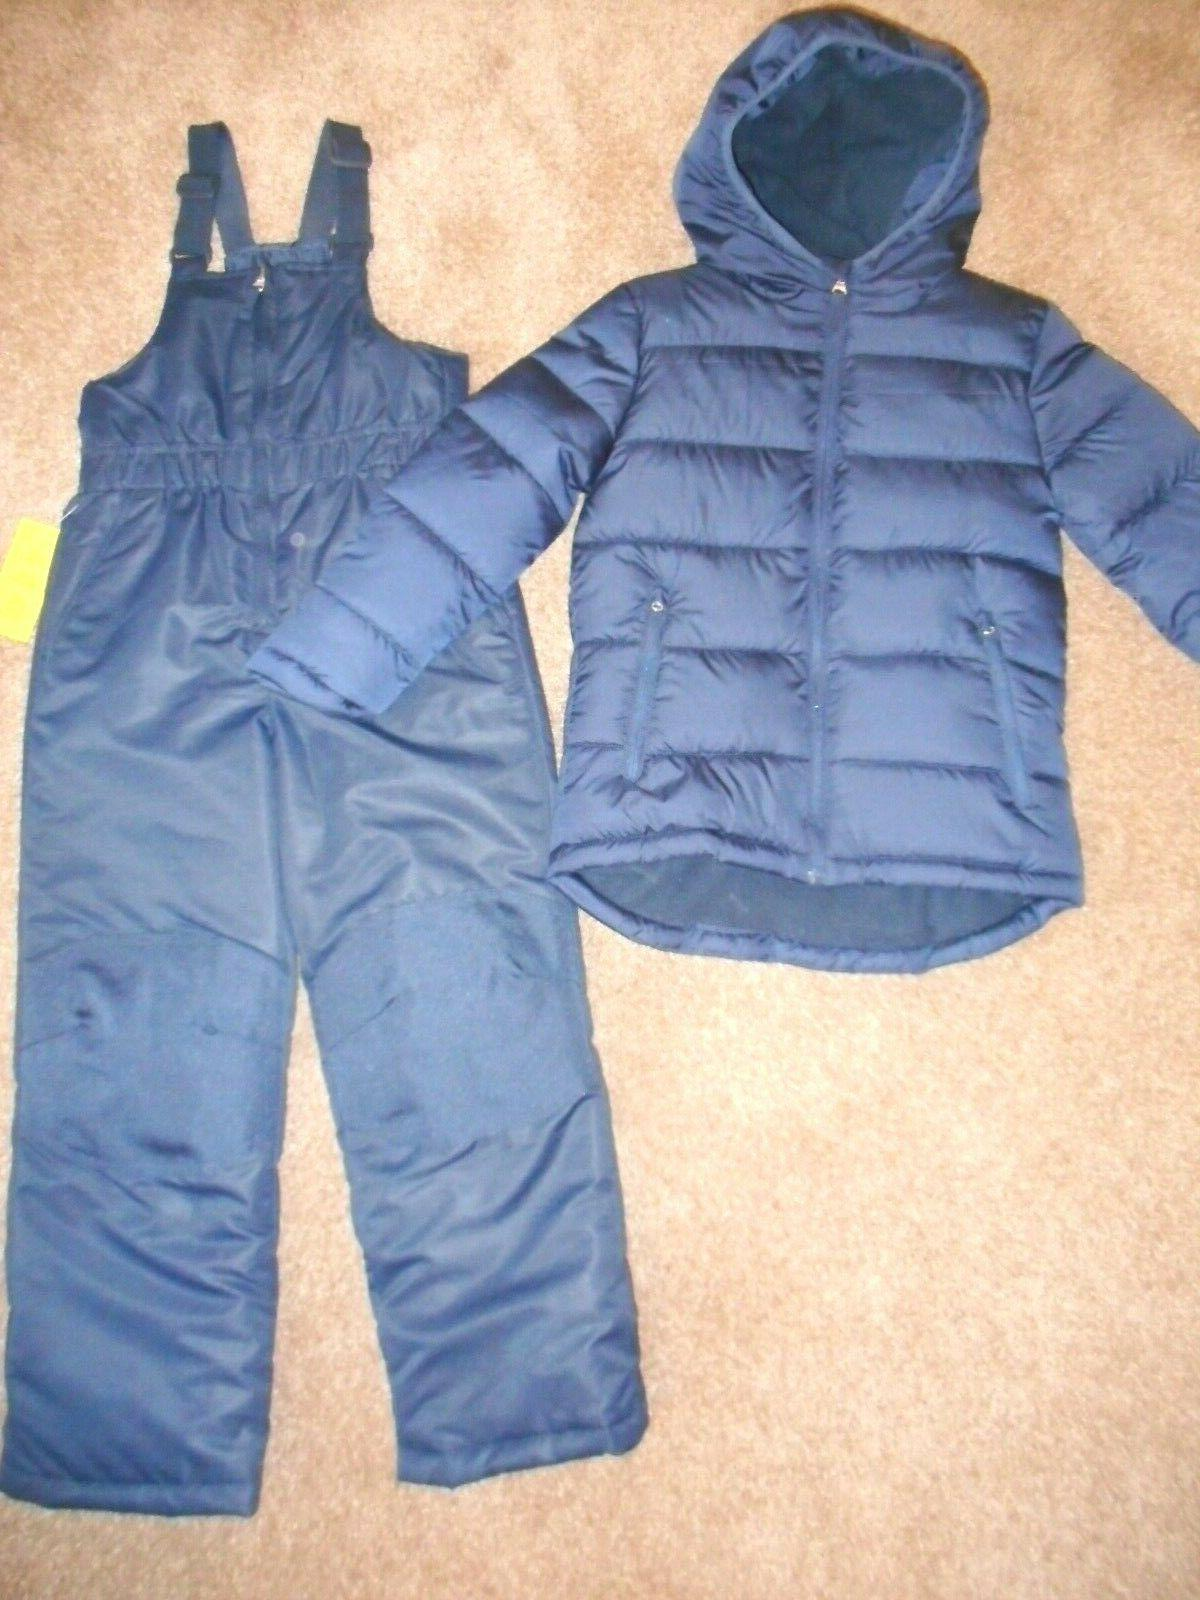 Boys Outerwear Ski Bibs Navy Blue Puffer Jackets Snow pants